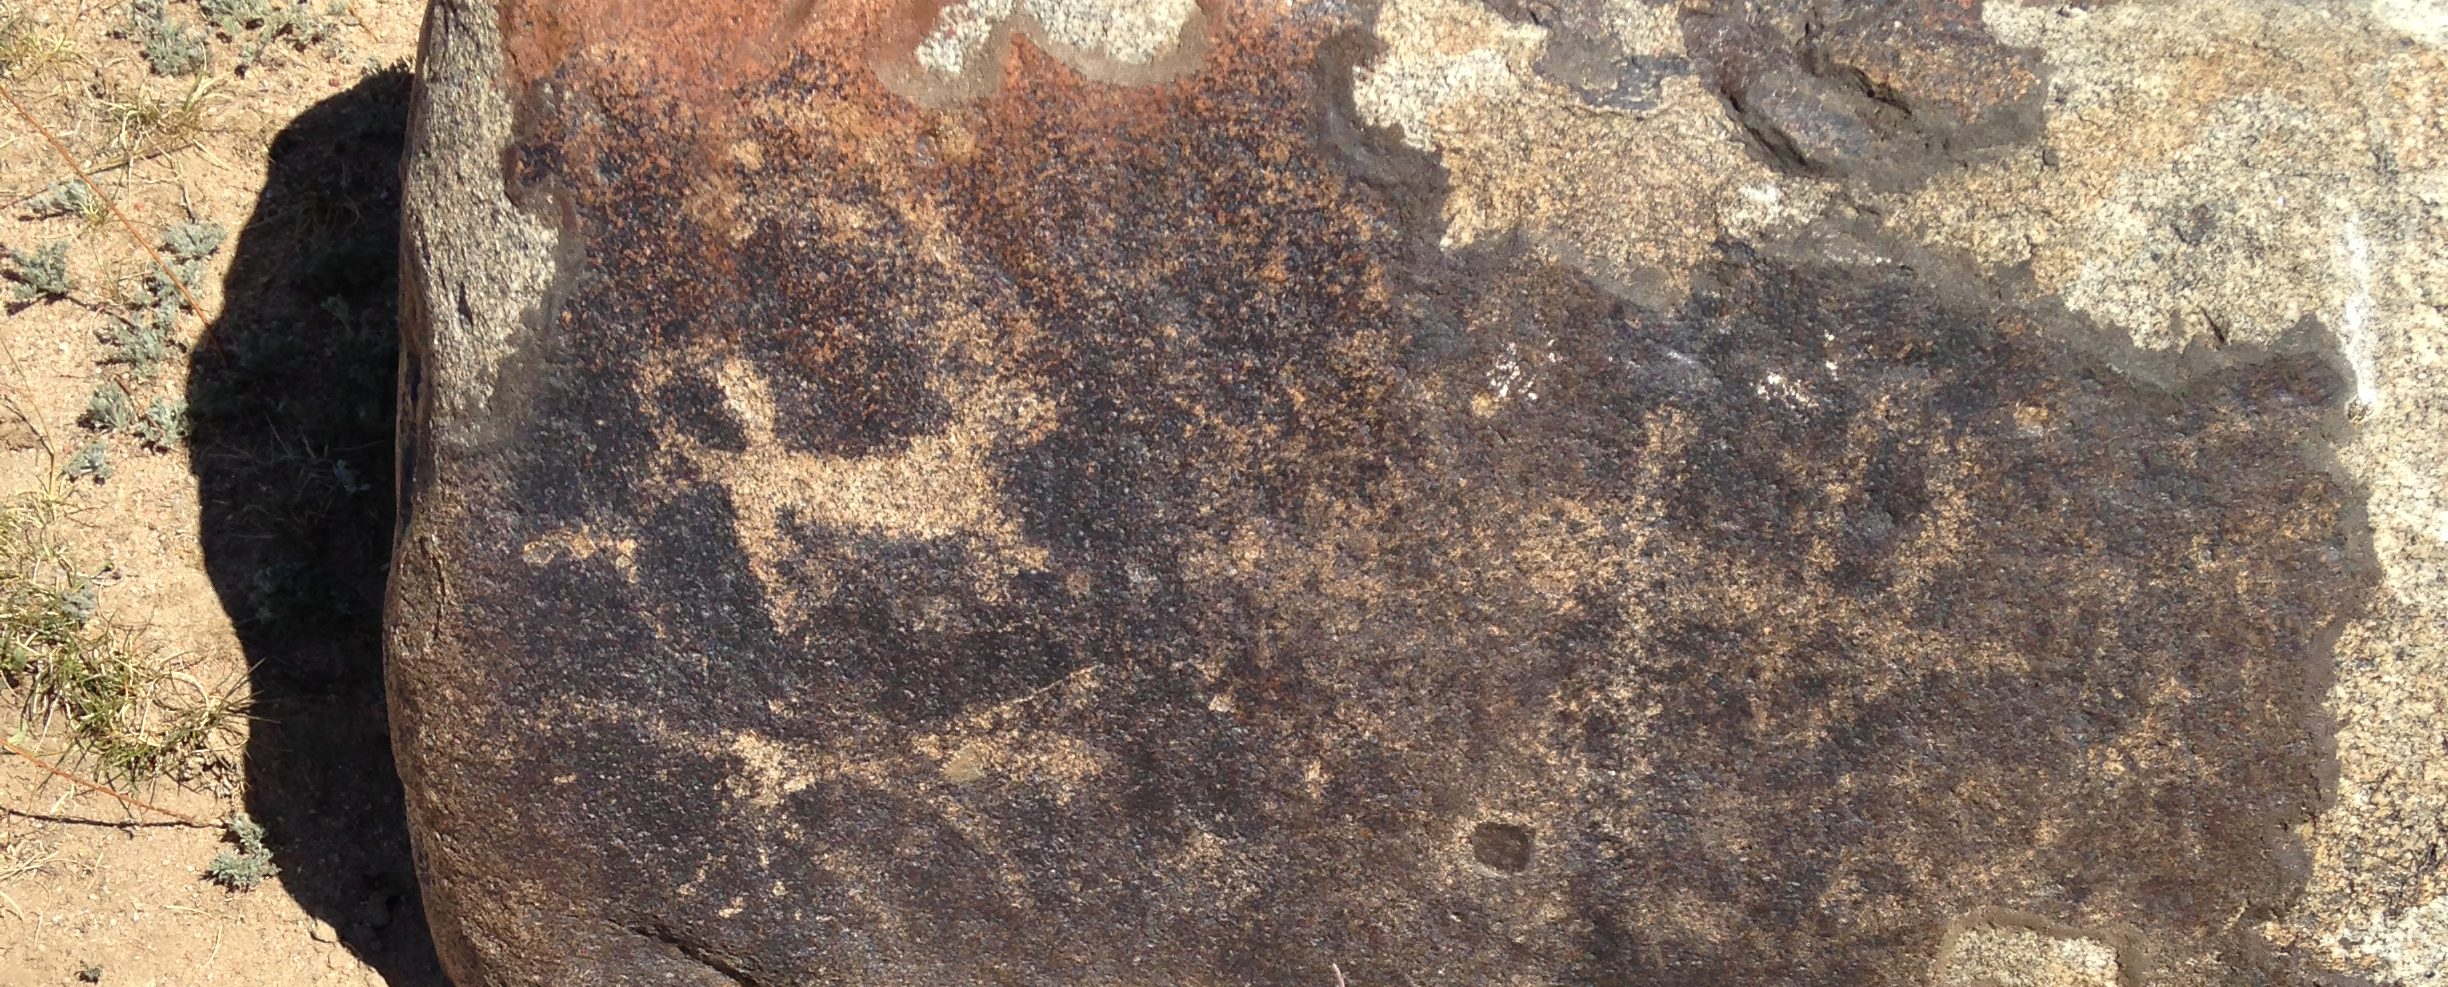 petroglyphs of a four-legged animal